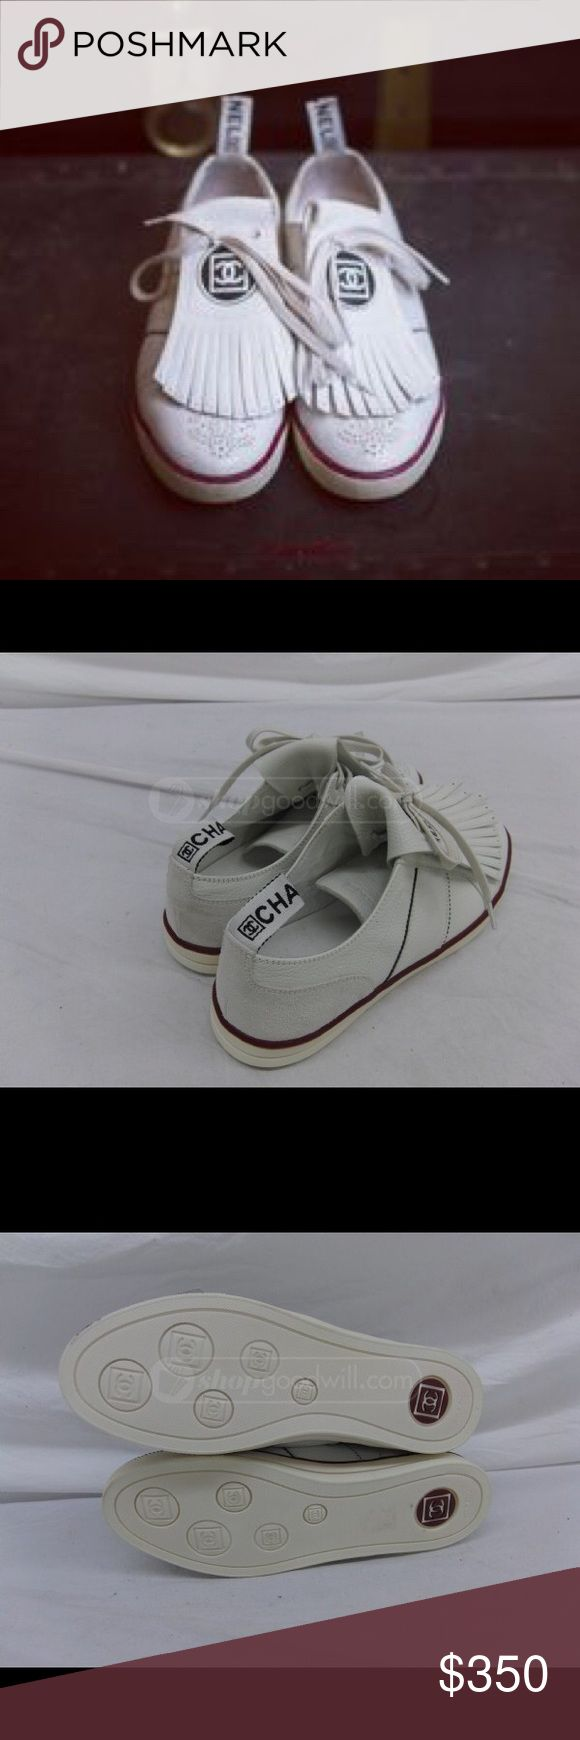 Chanel Sport Shoe Authentic, Gently Used Chanel Shoe CHANEL Shoes Sneakers